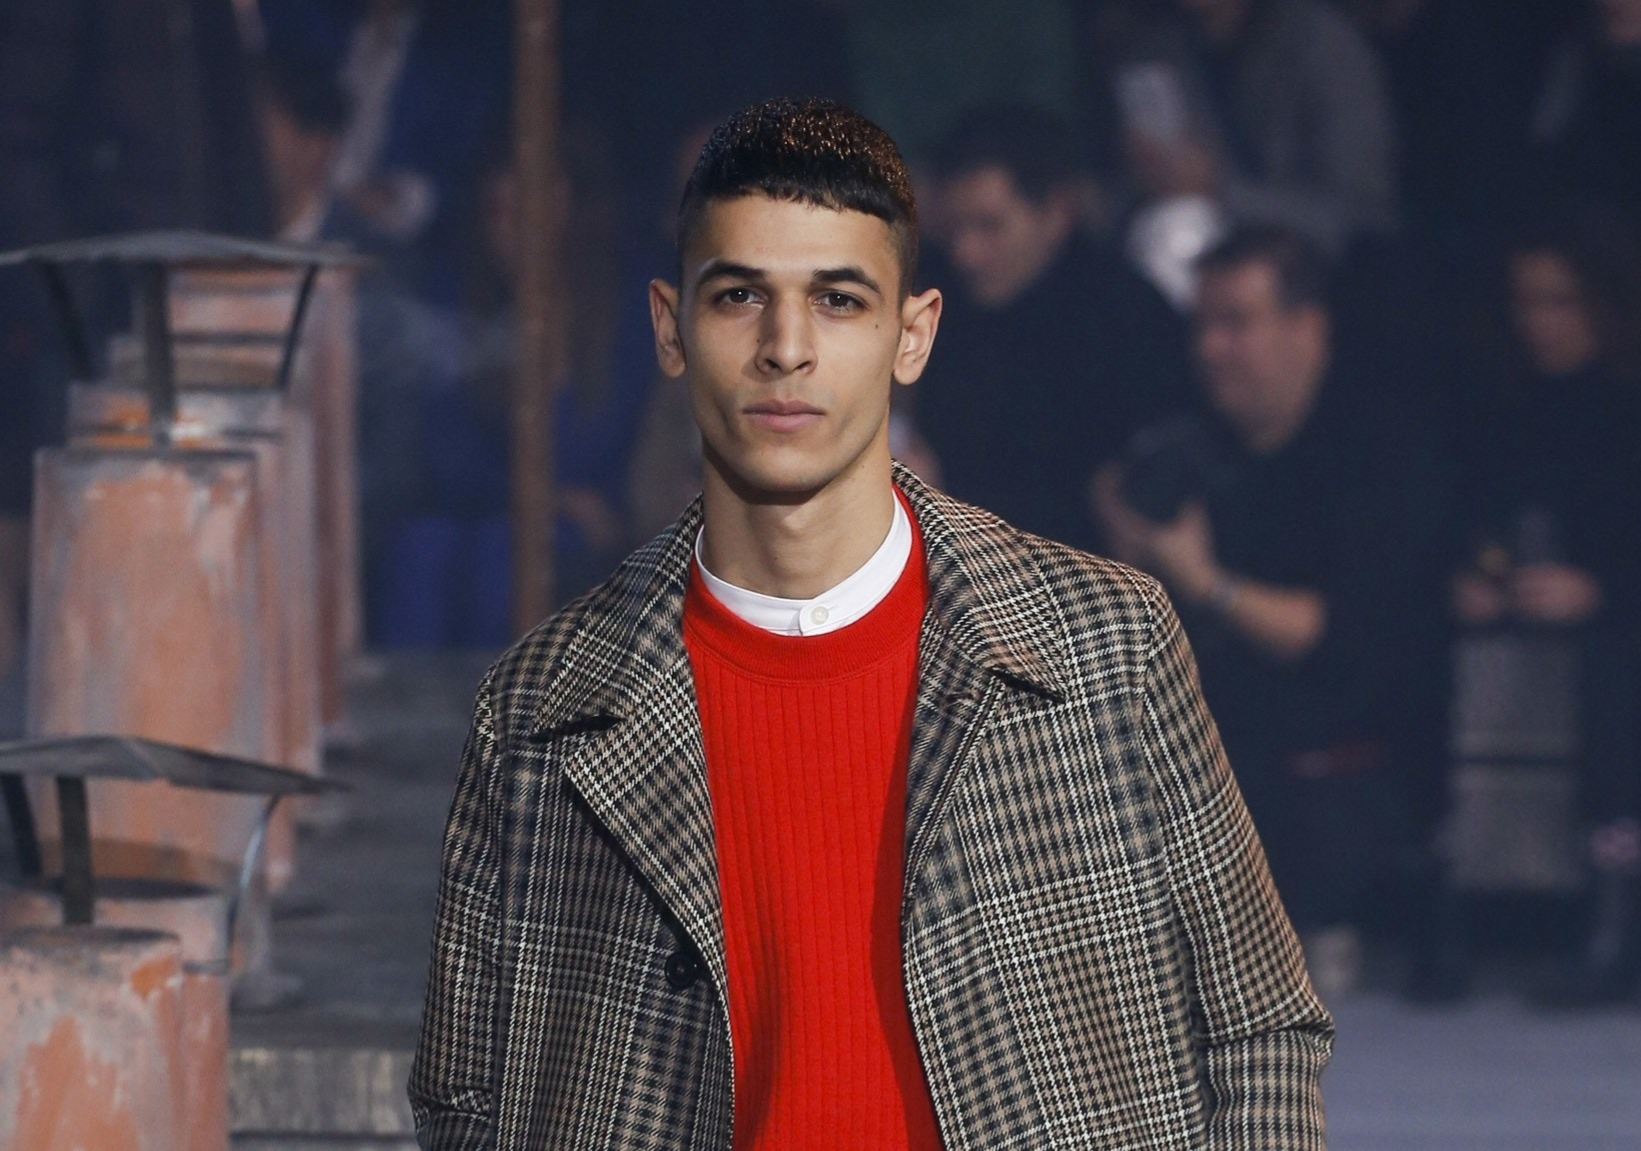 The Arab Male Models The Fashion Industry Is Crazy About Mille